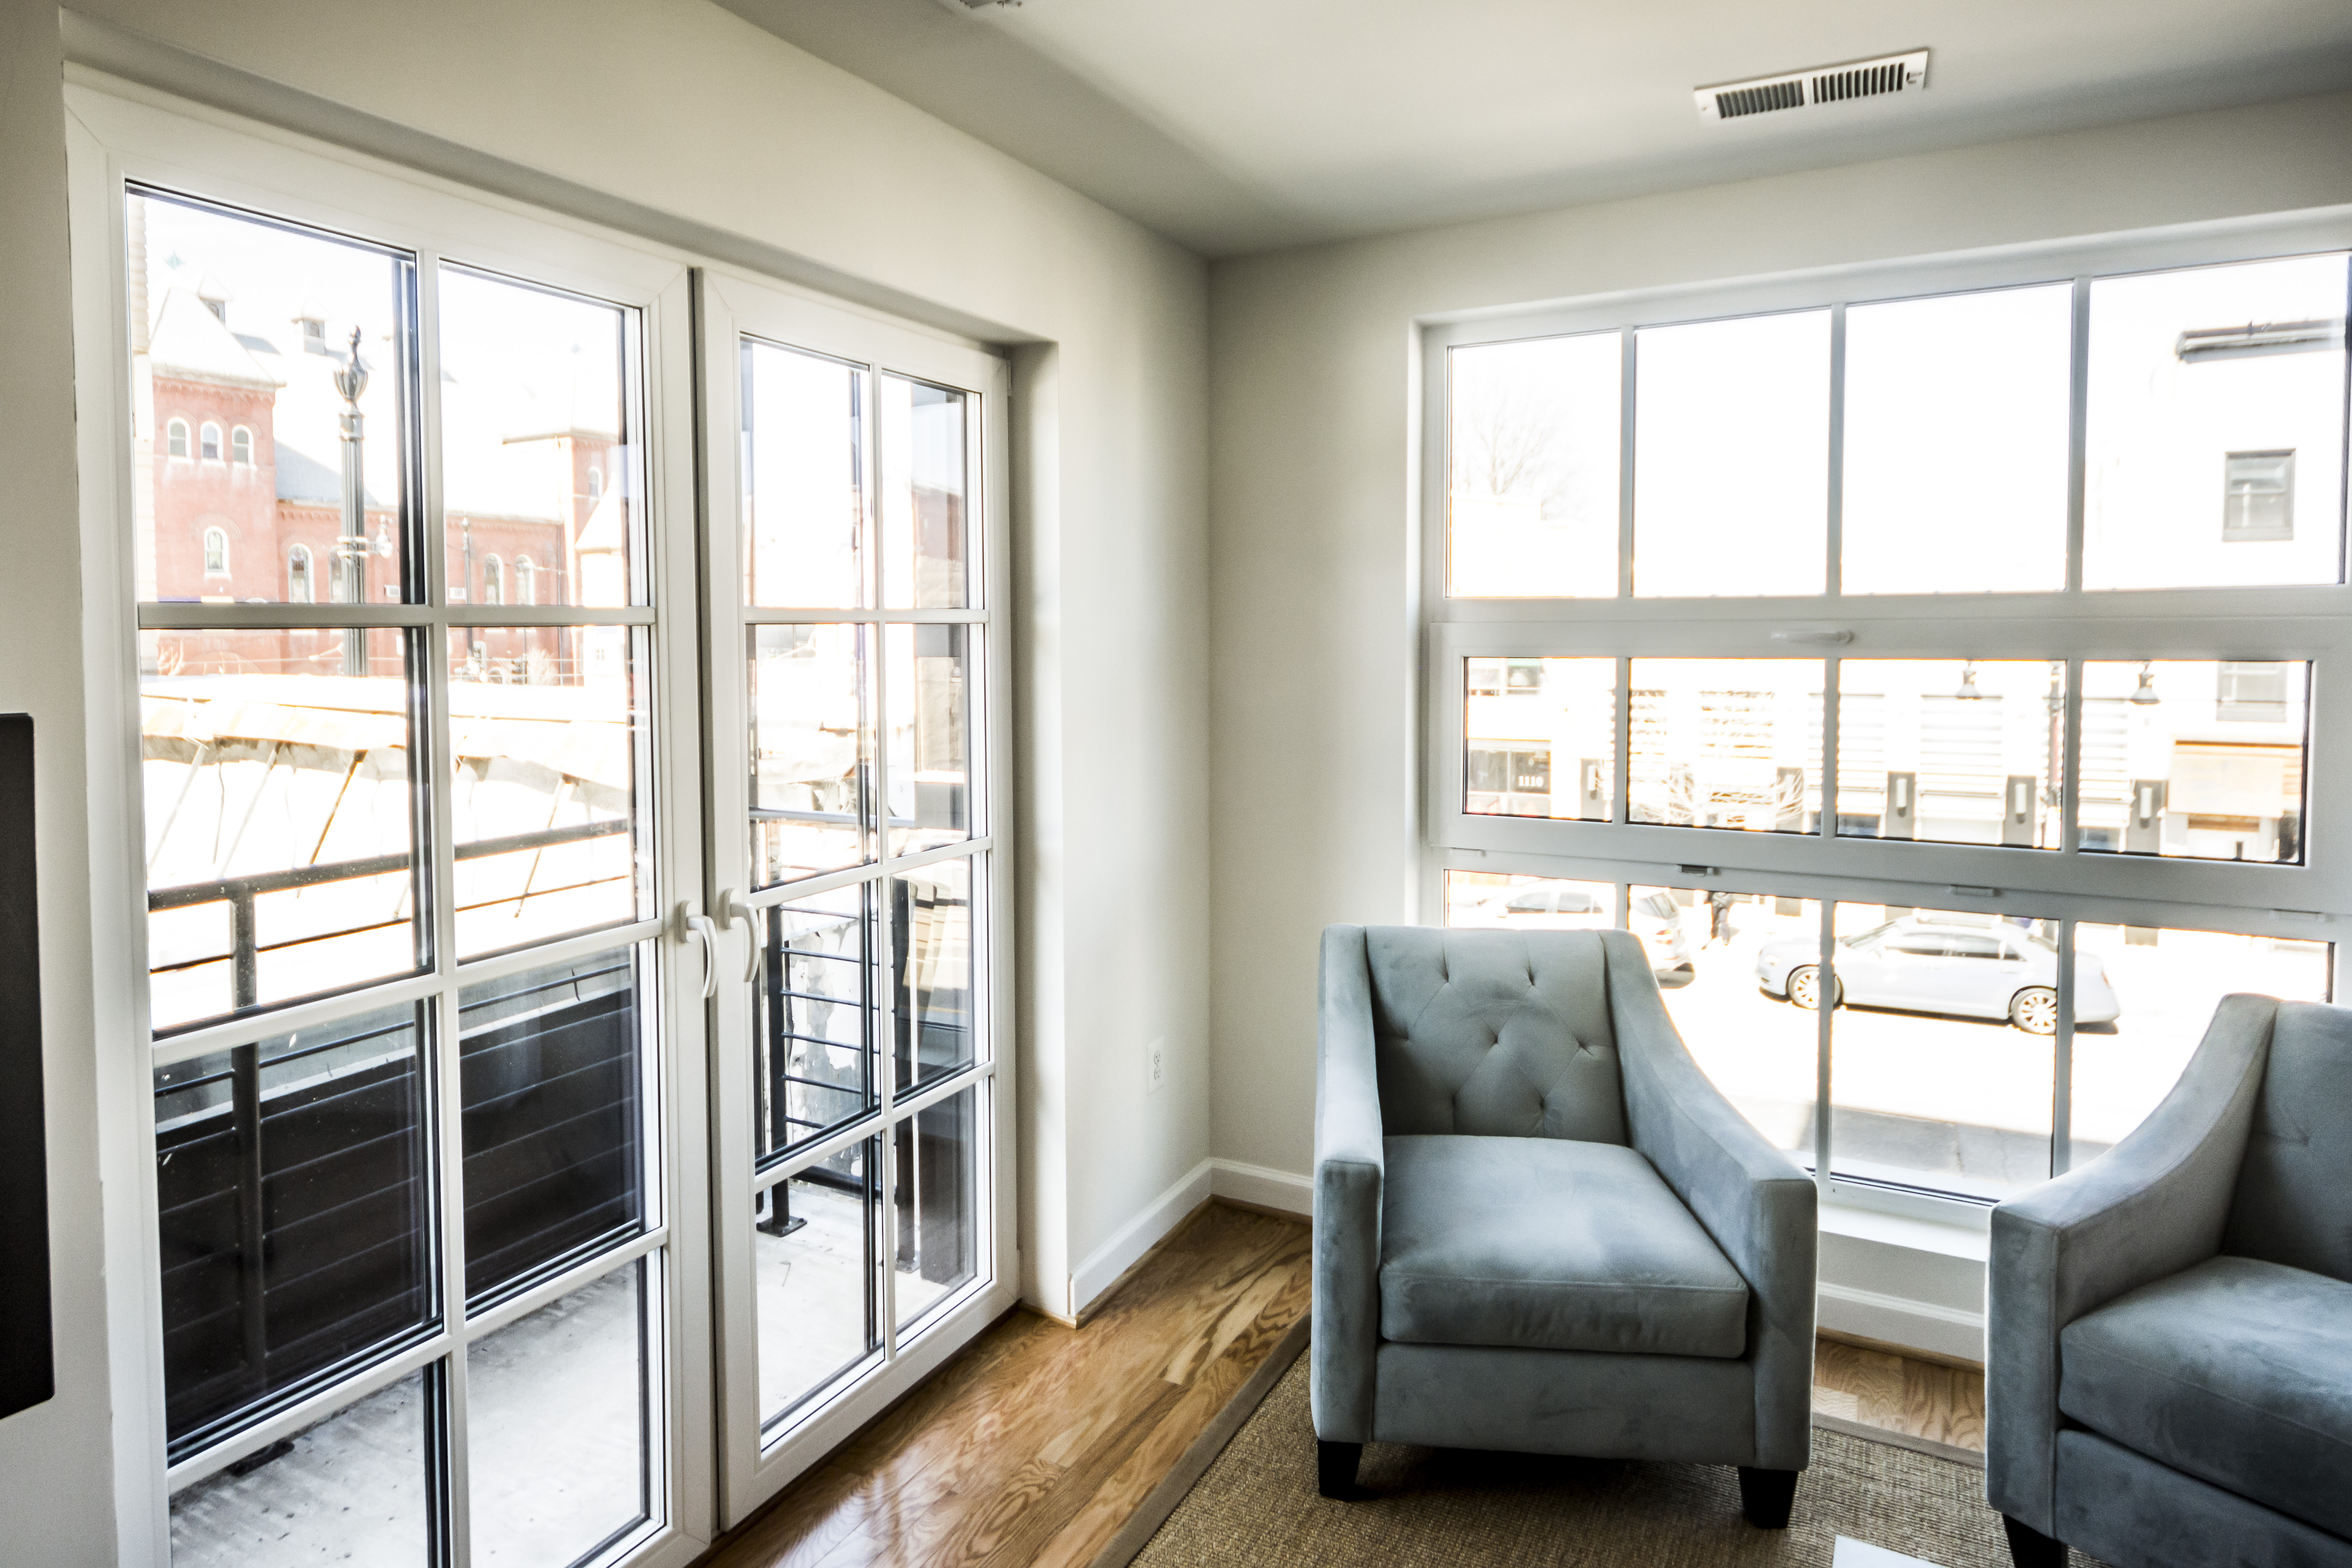 1115 H St. Apartments with INTUS Windows